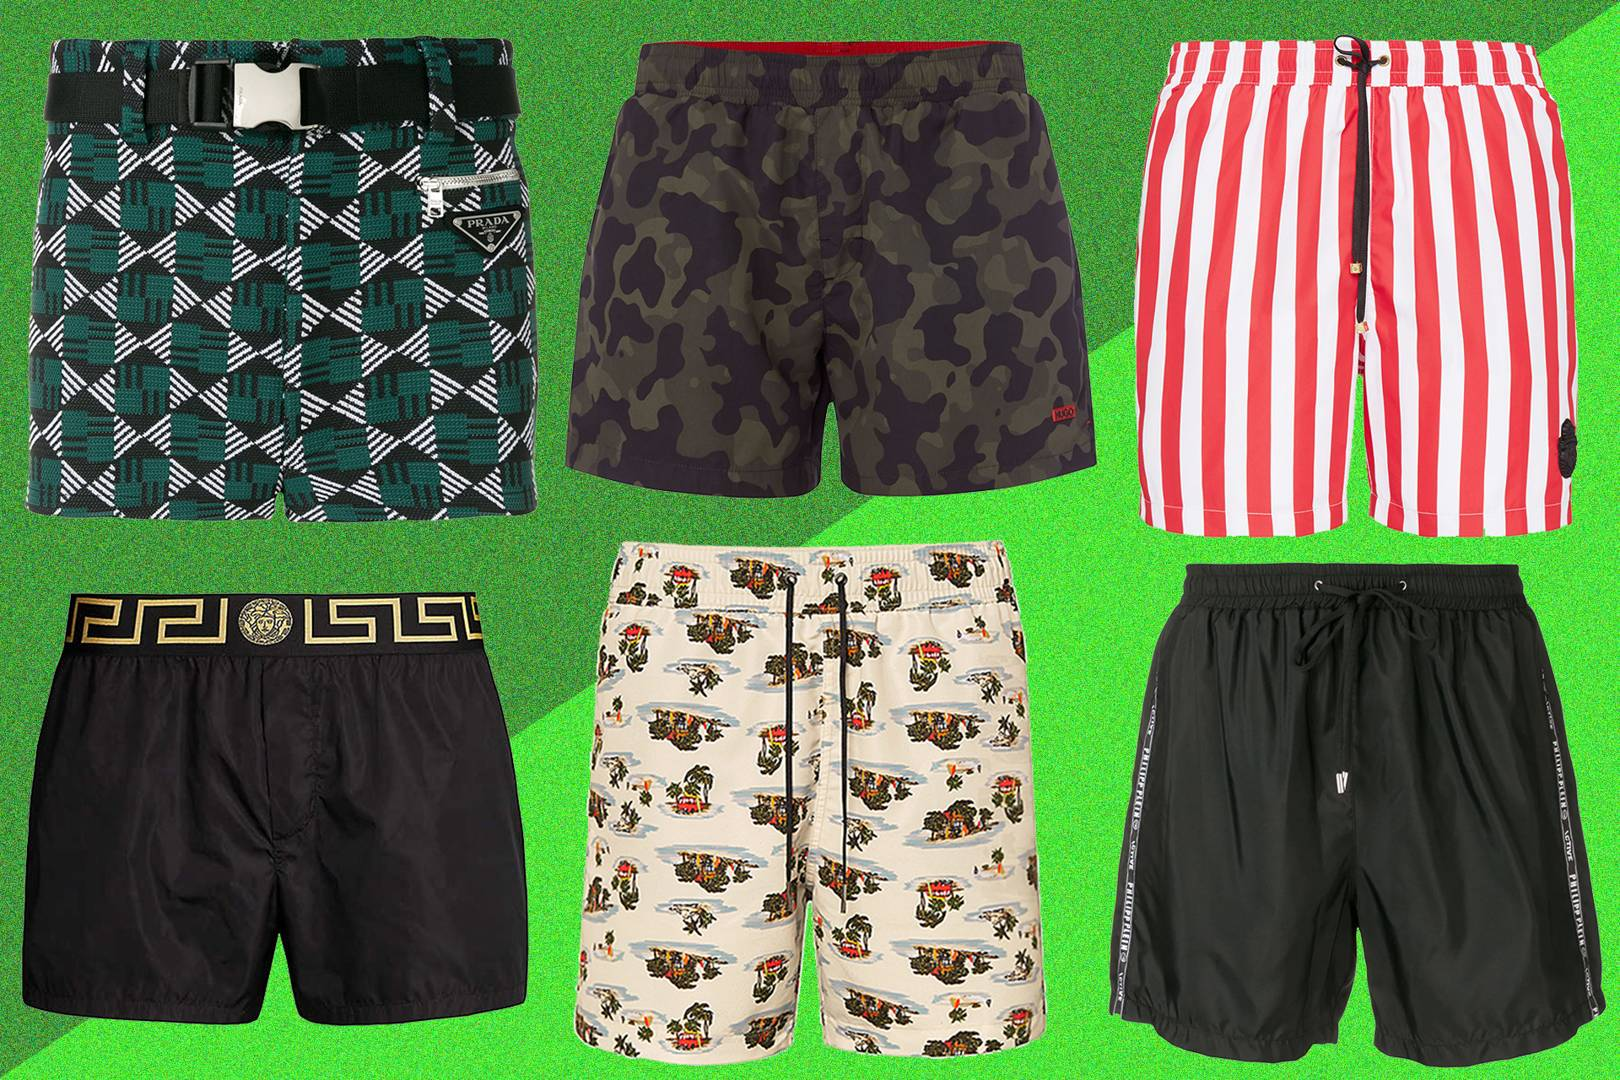 e96cec385 Best men's swim shorts for summer | British GQ